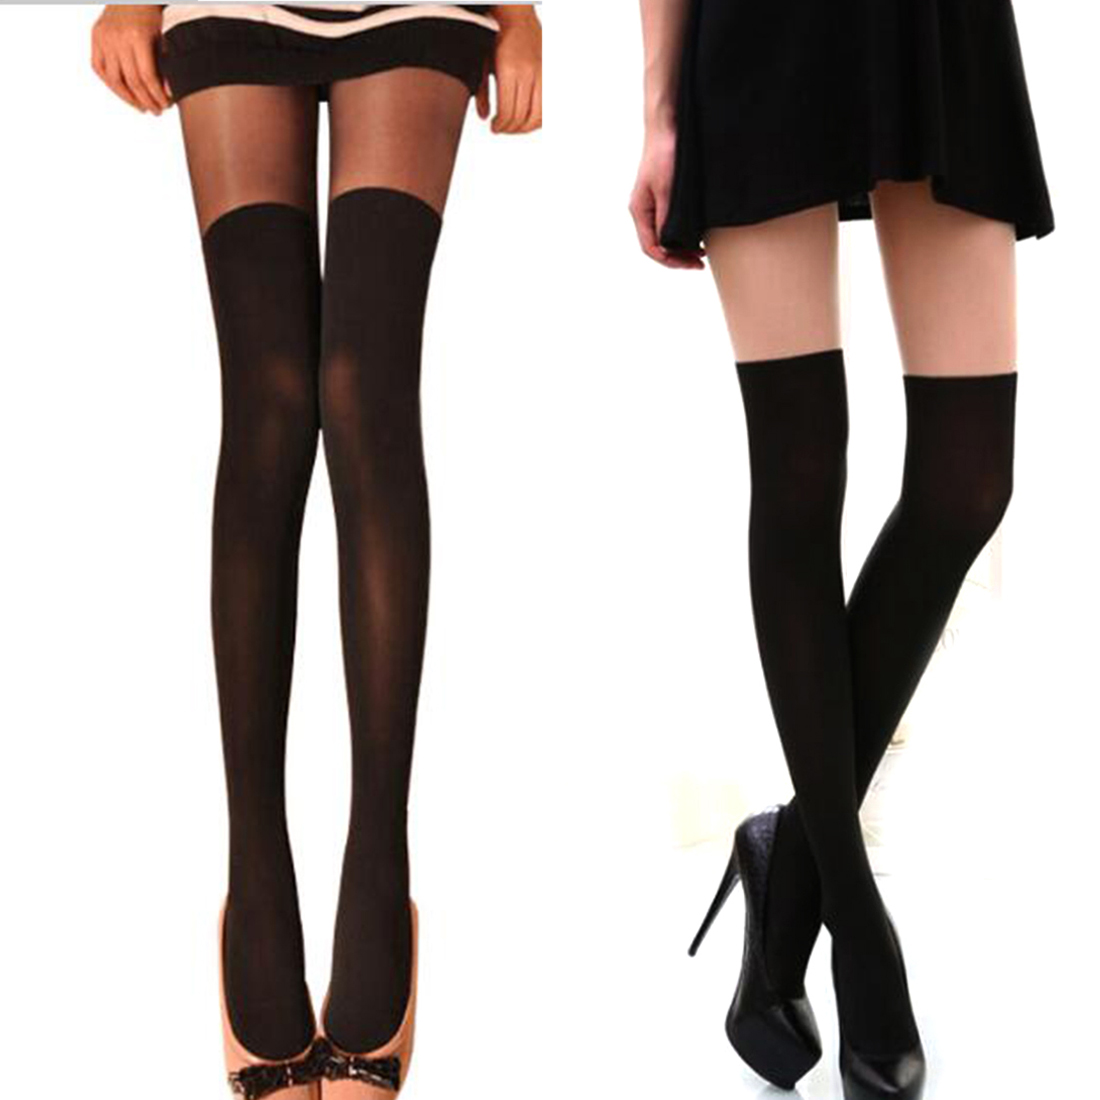 Fashion Pretty Style Women Over the Knee Tattoo Tights Black Mixed Colors Mock Ribbed Tinted Sheer False High Stocking Pantyhose